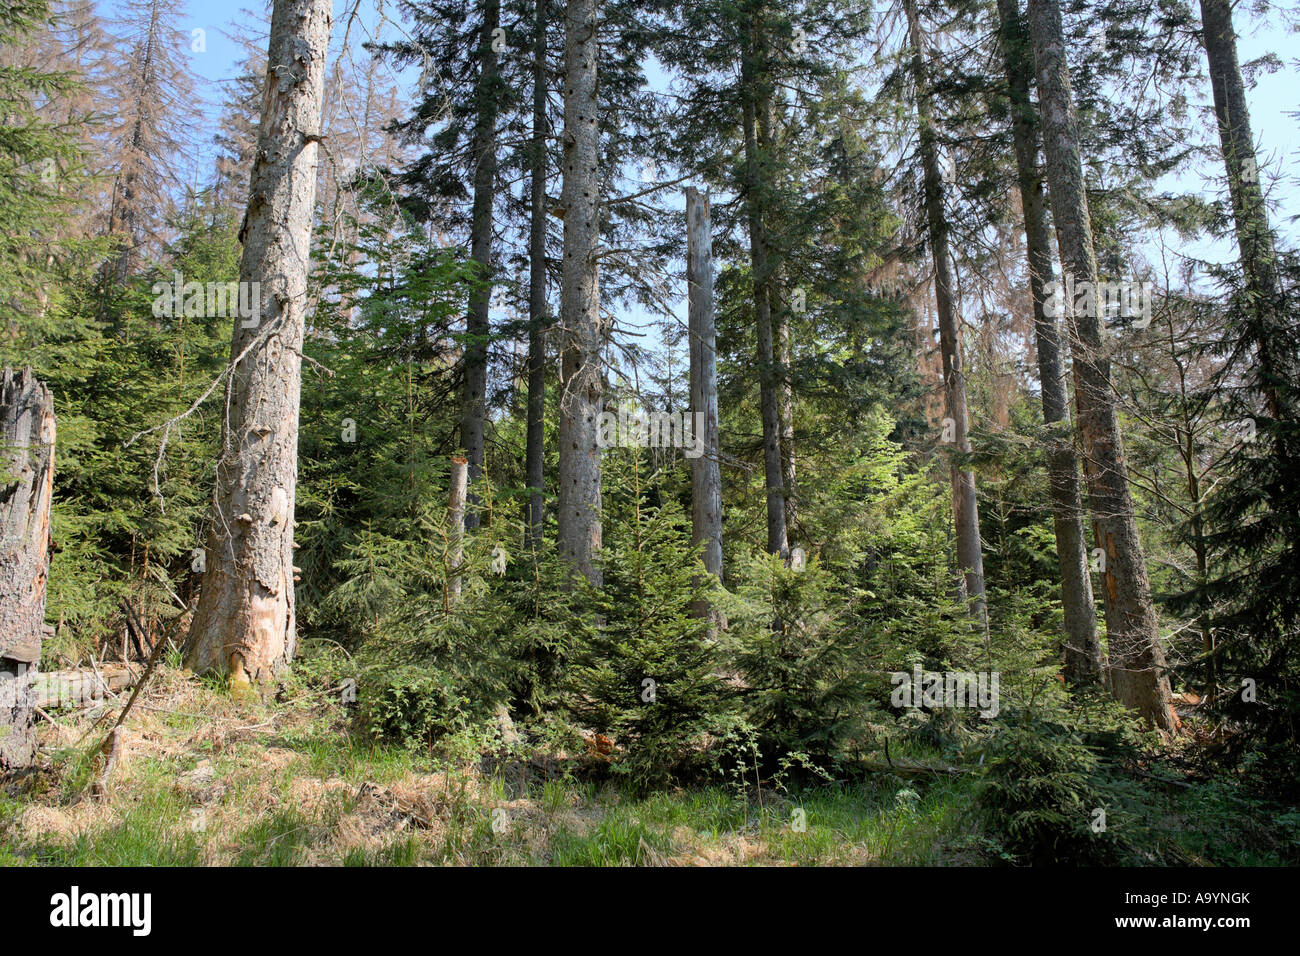 Mixed forest with dead and young spruces, regeneration, Bayerischer Wald National park, Lower Bavaria, Germany Stock Photo